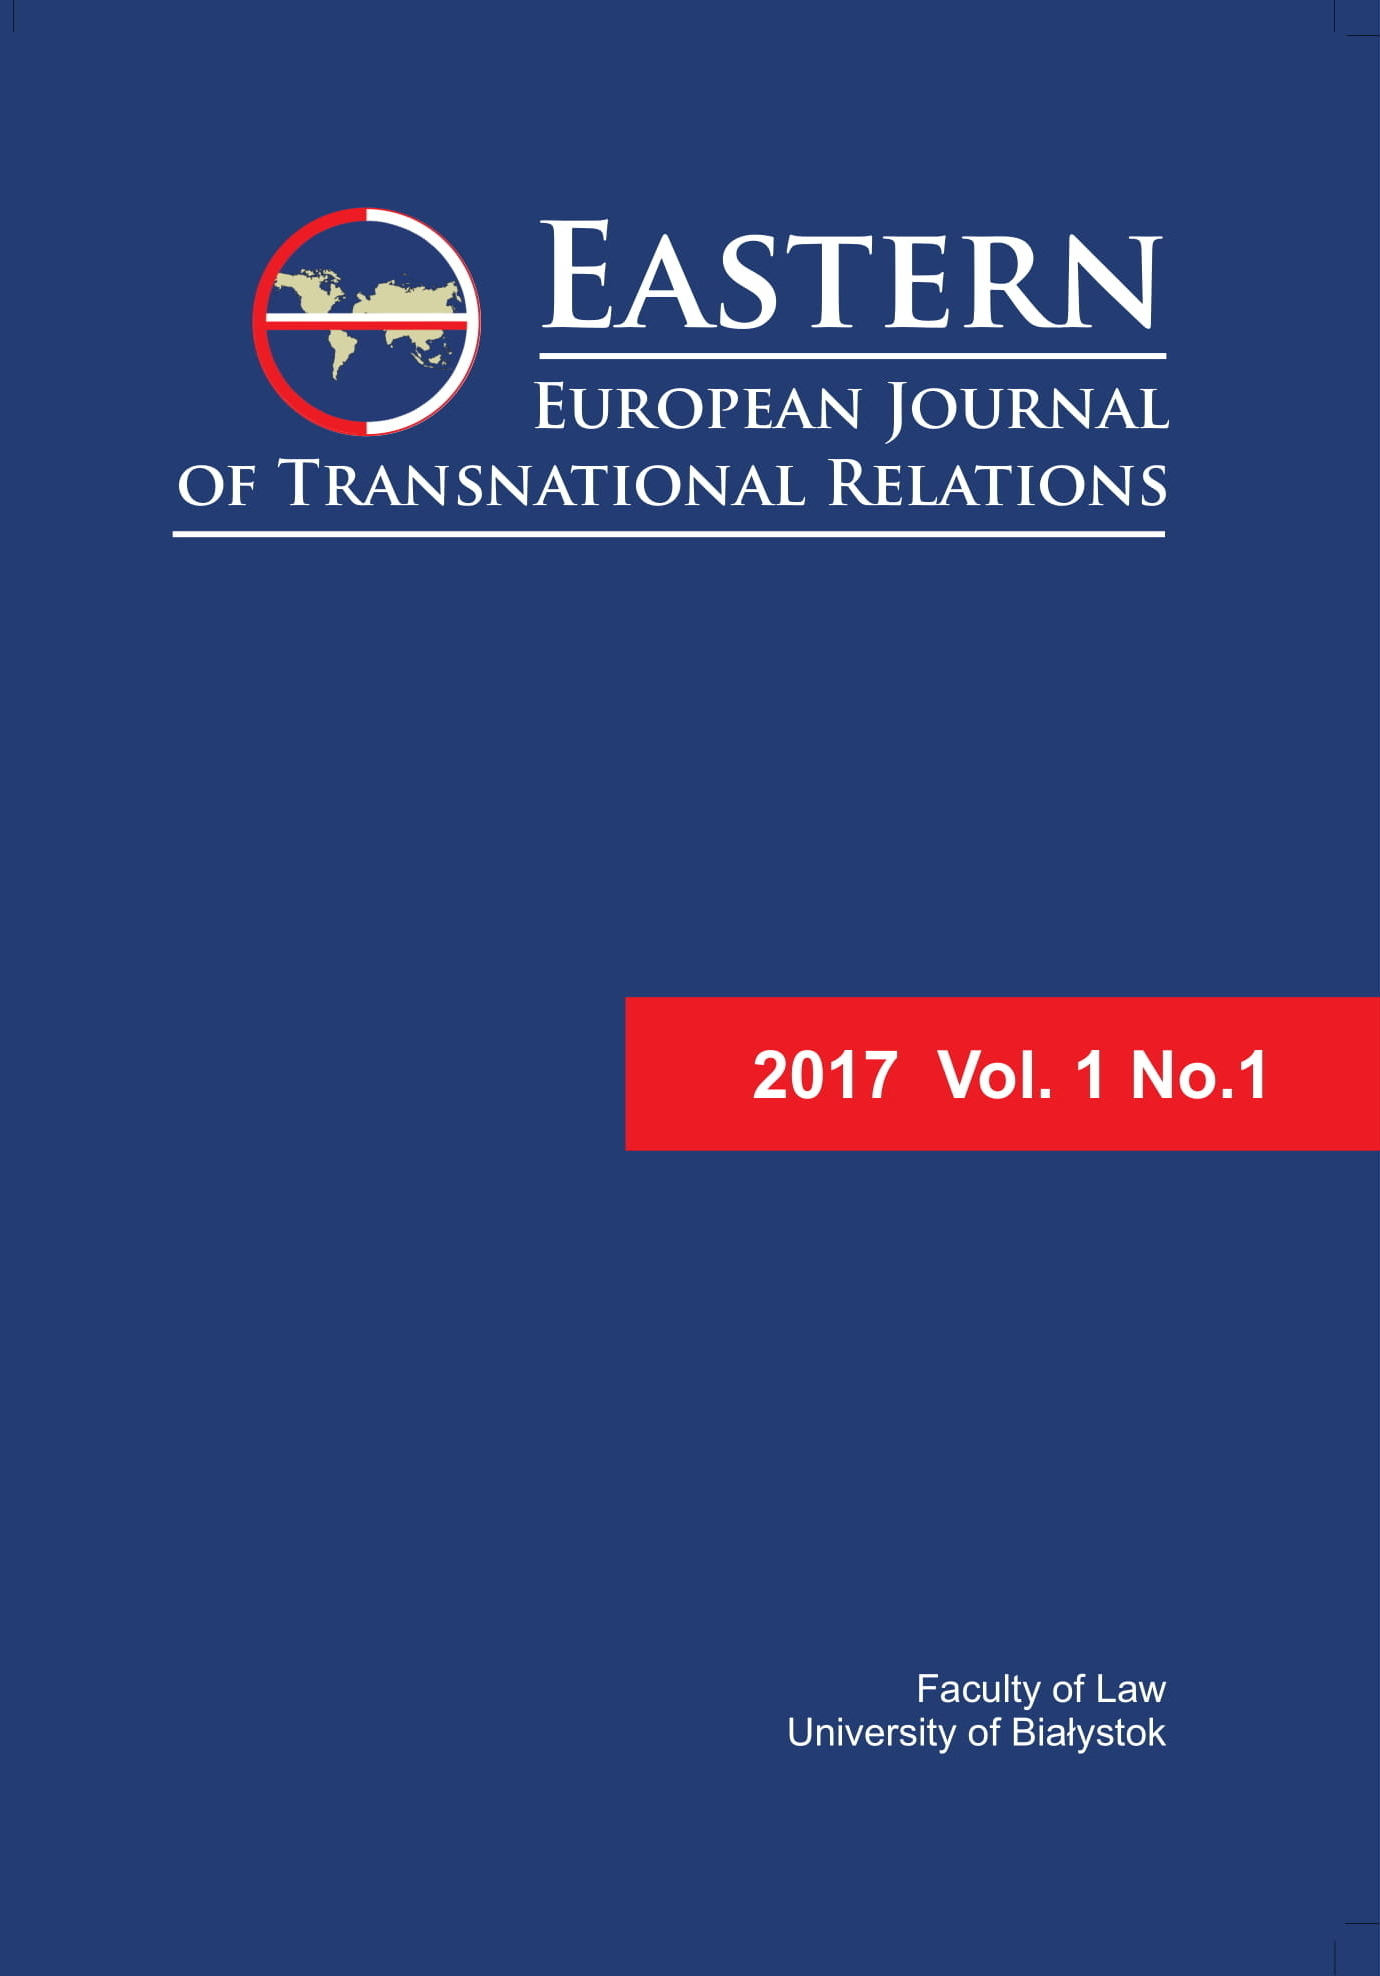 Eastern European Journal of Transnational Relations